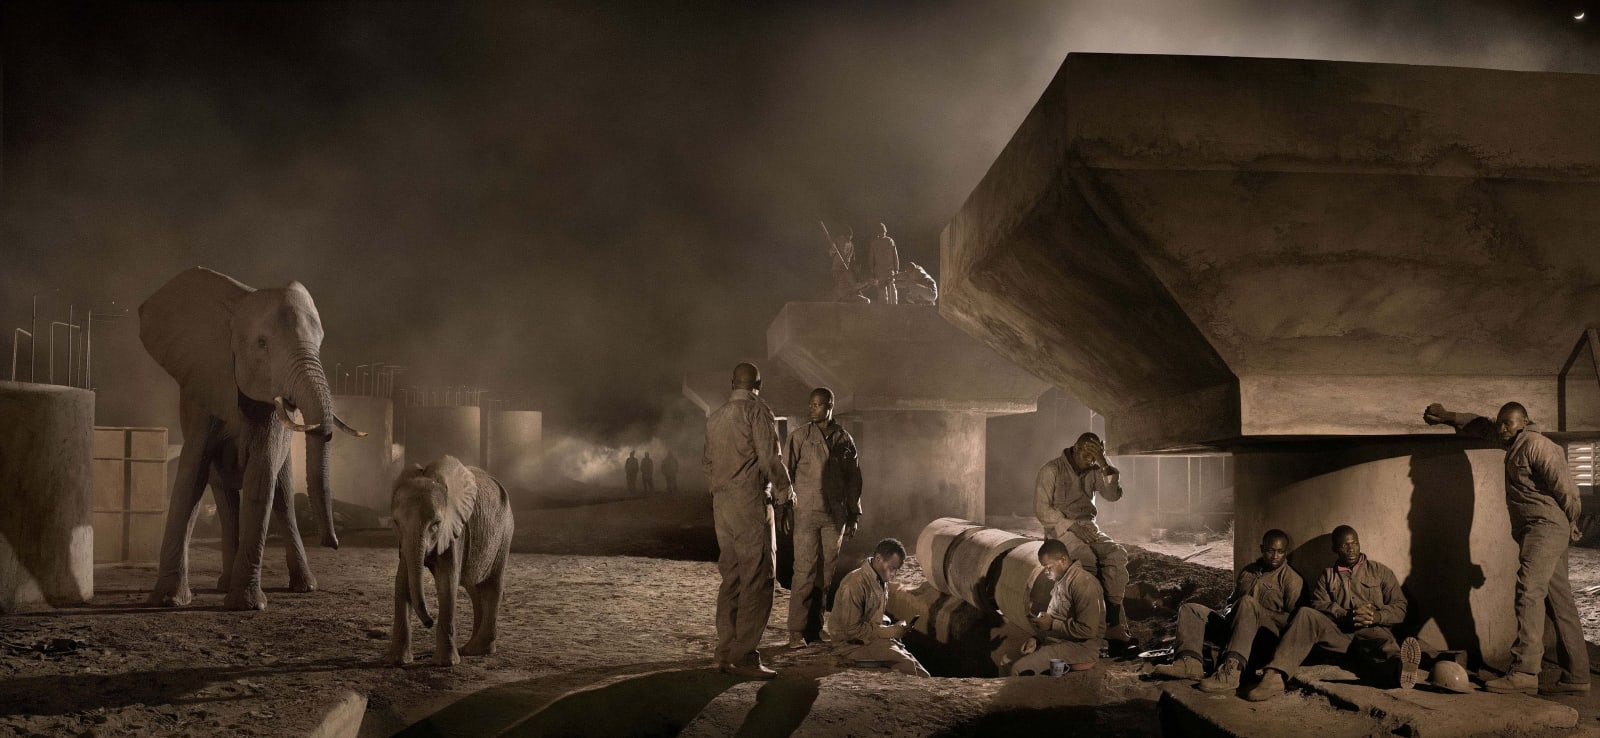 Nick Brandt, Bridge Construction With Elephants & Workers at Night, 2018